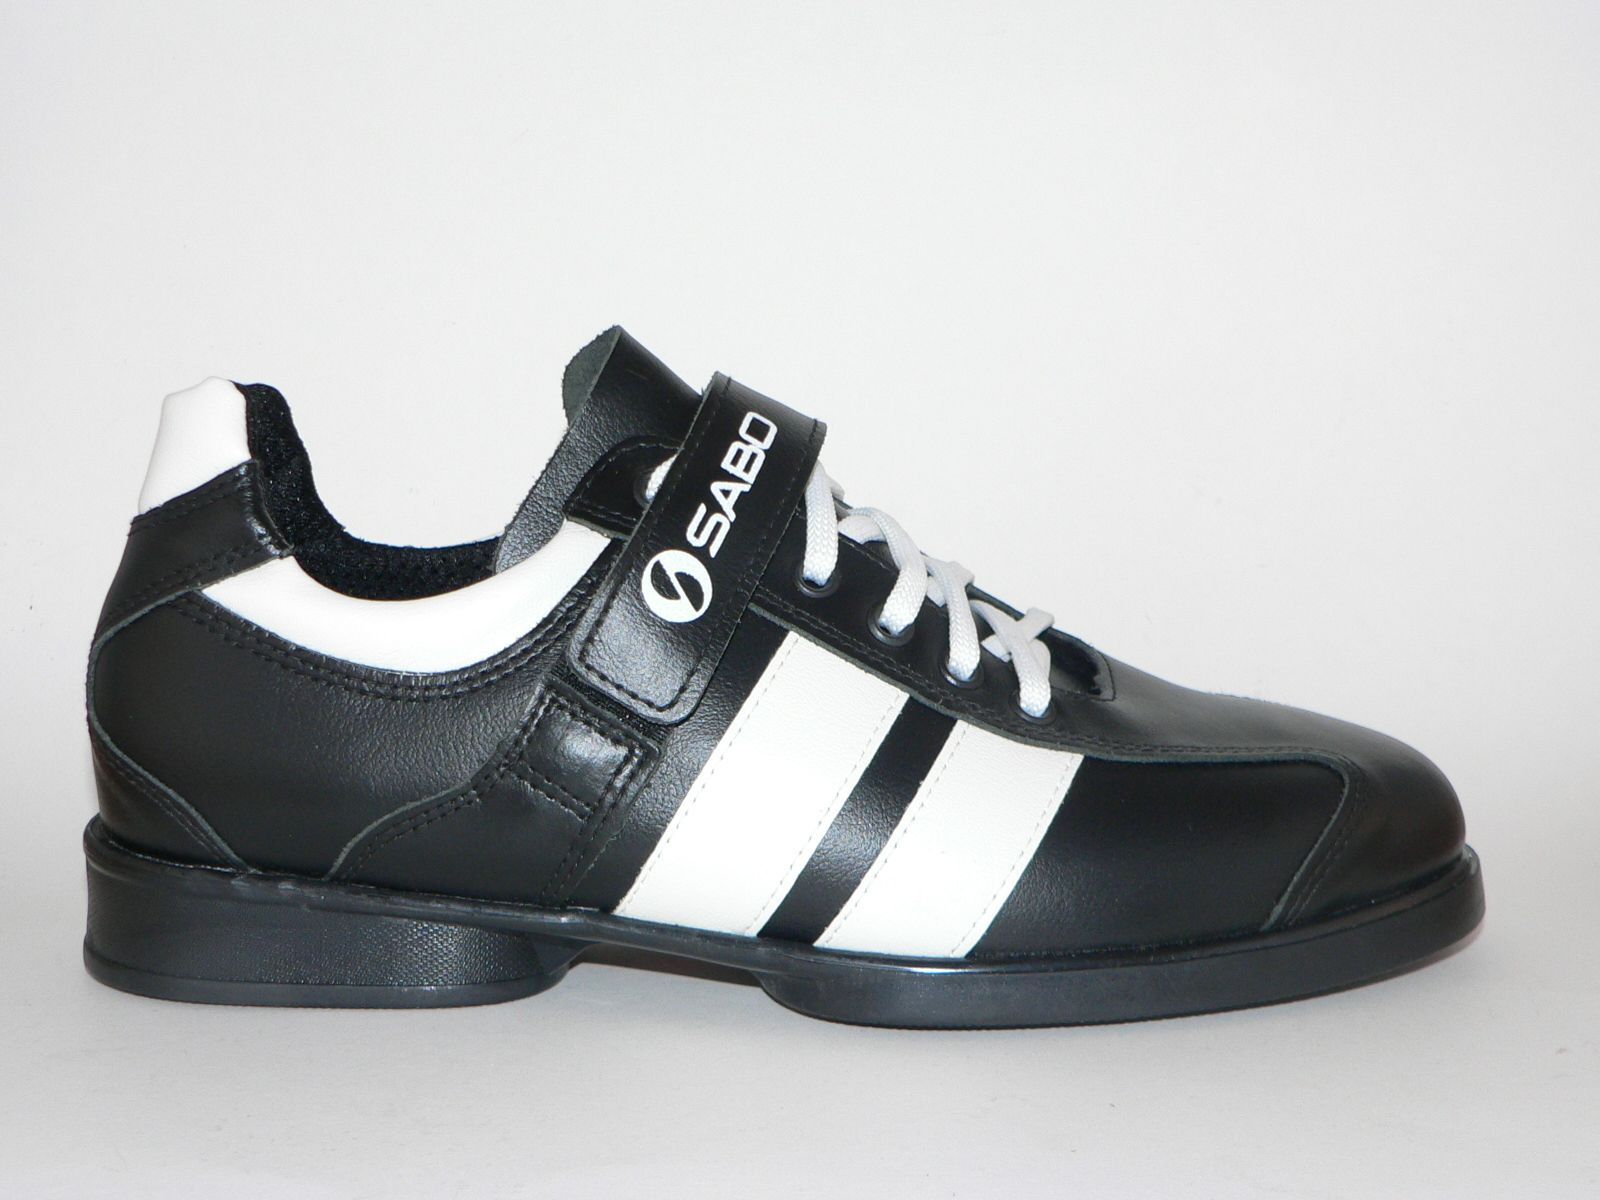 be13c2131a5857 SABO weightlifting shoes. Now available in the USA